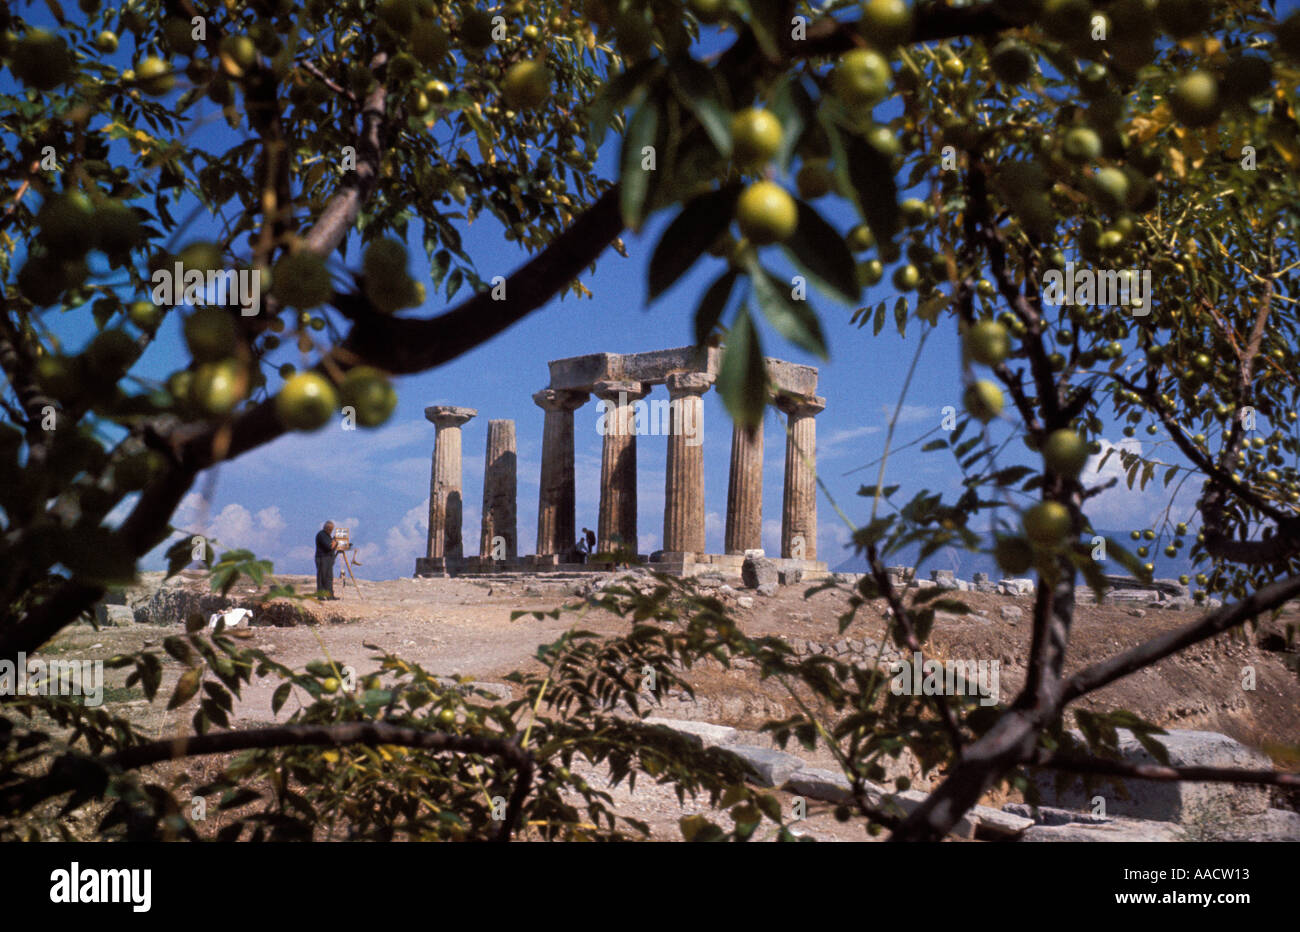 Beautiful ancient Greek temple on a hillside in Crete seen from an olive grove - Stock Image